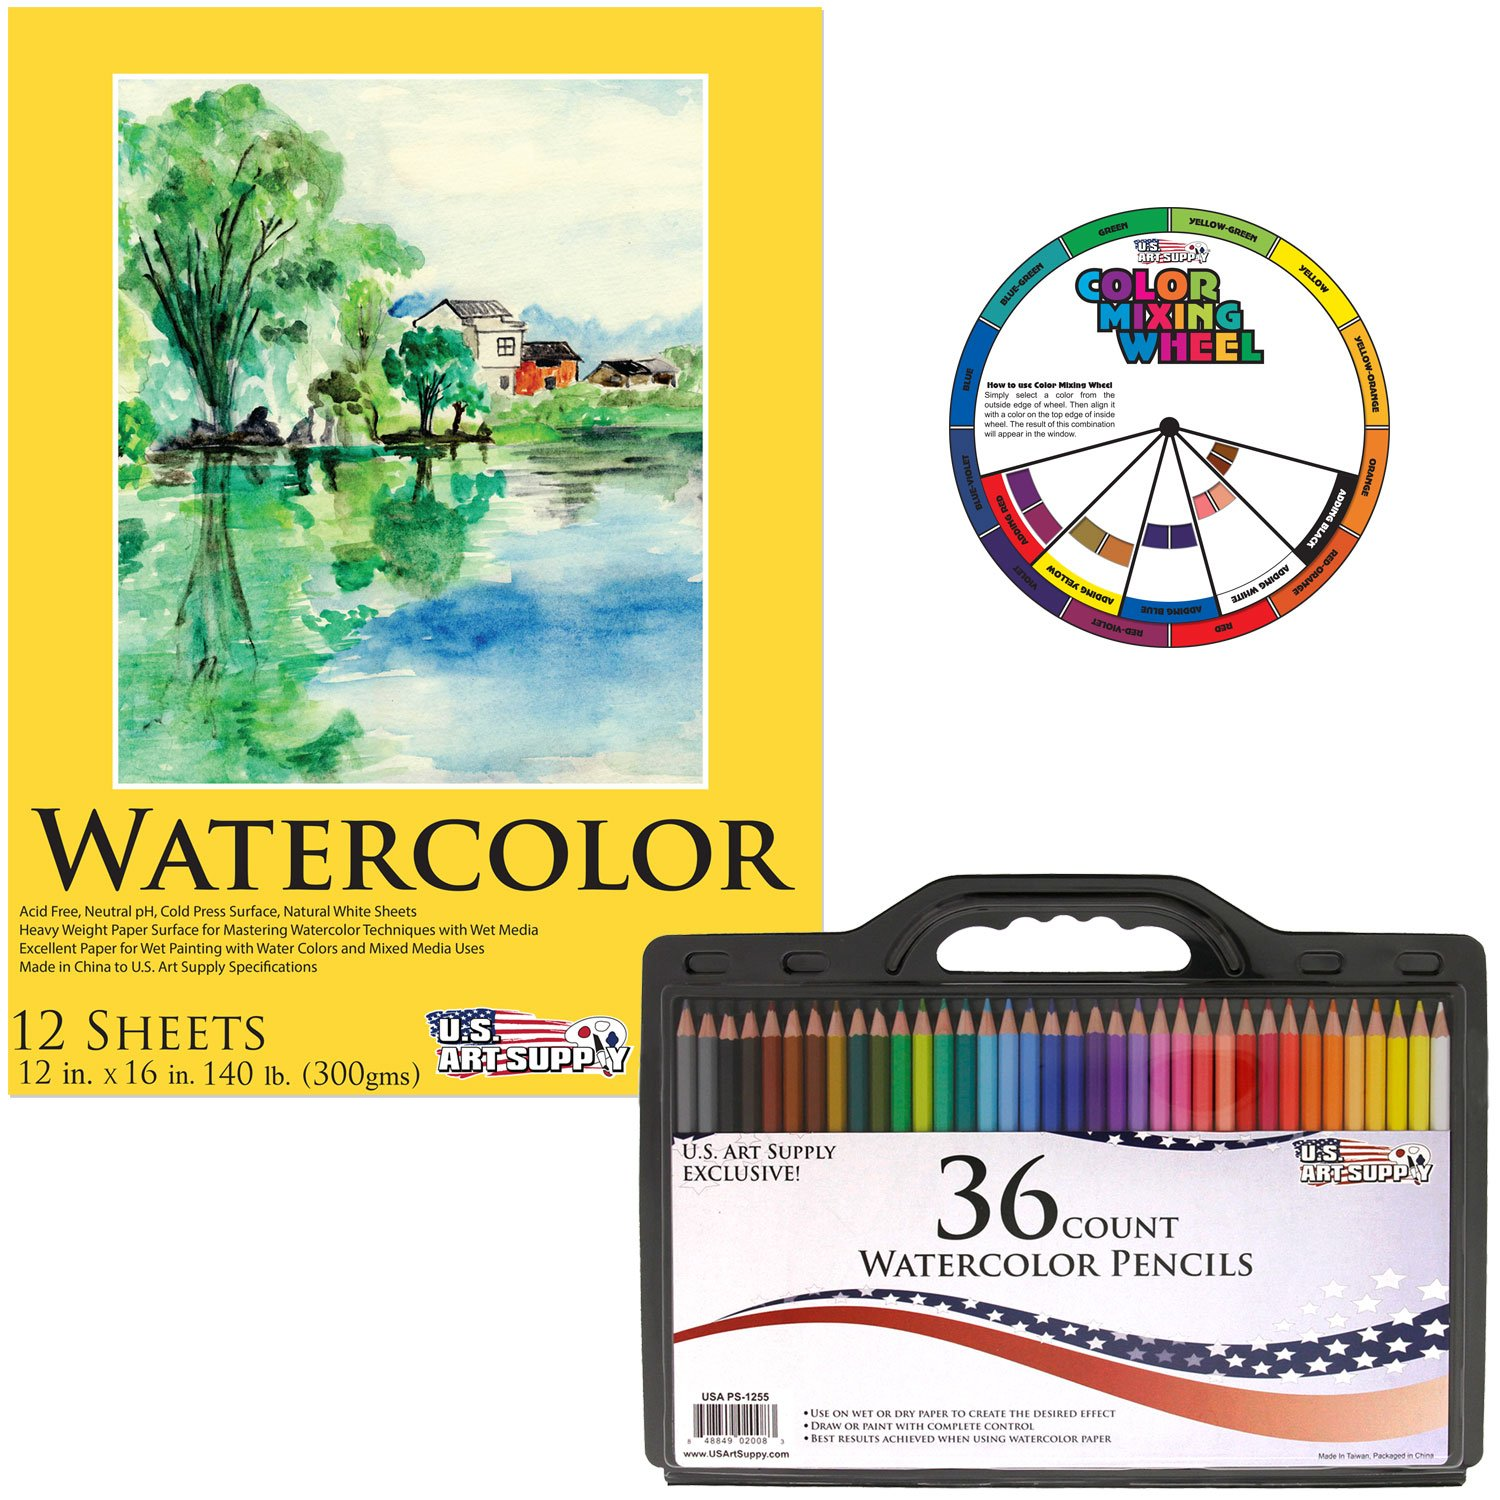 Watercolor artist magazine customer service - Amazon Com Us Art Supply 36 Piece Watercolor Artist Grade Water Soluble Colored Pencil Set Full Sized 7 Inch Length Now Includes A Free Reusable Plastic